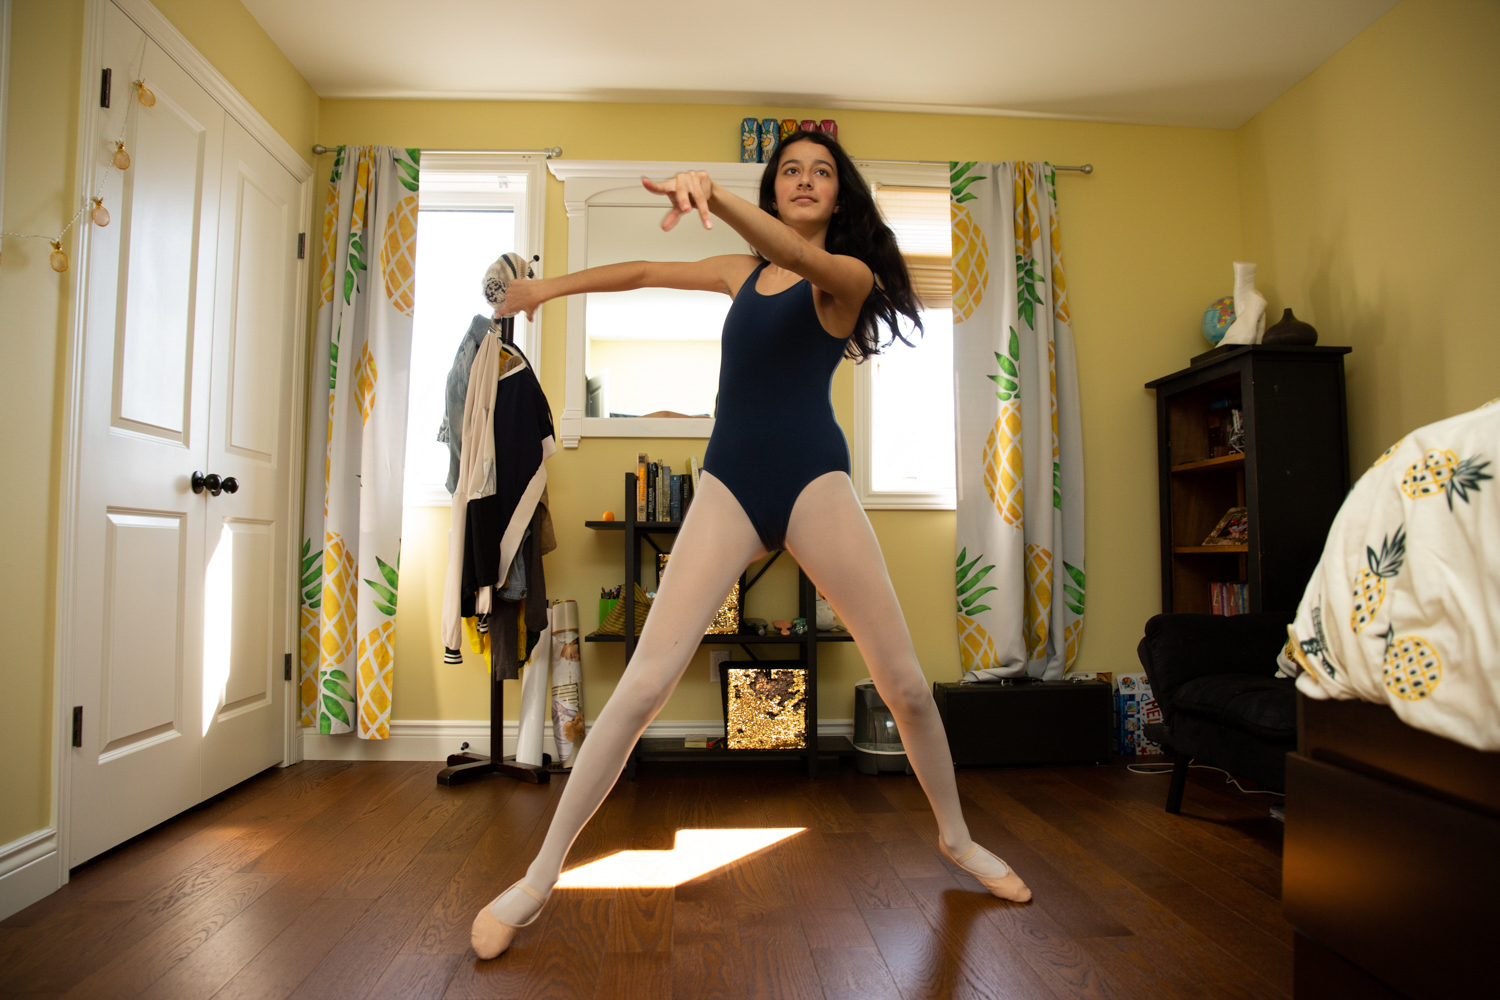 Mathur practices ballet in her room (Photograph by Vanessa Tignanelli)